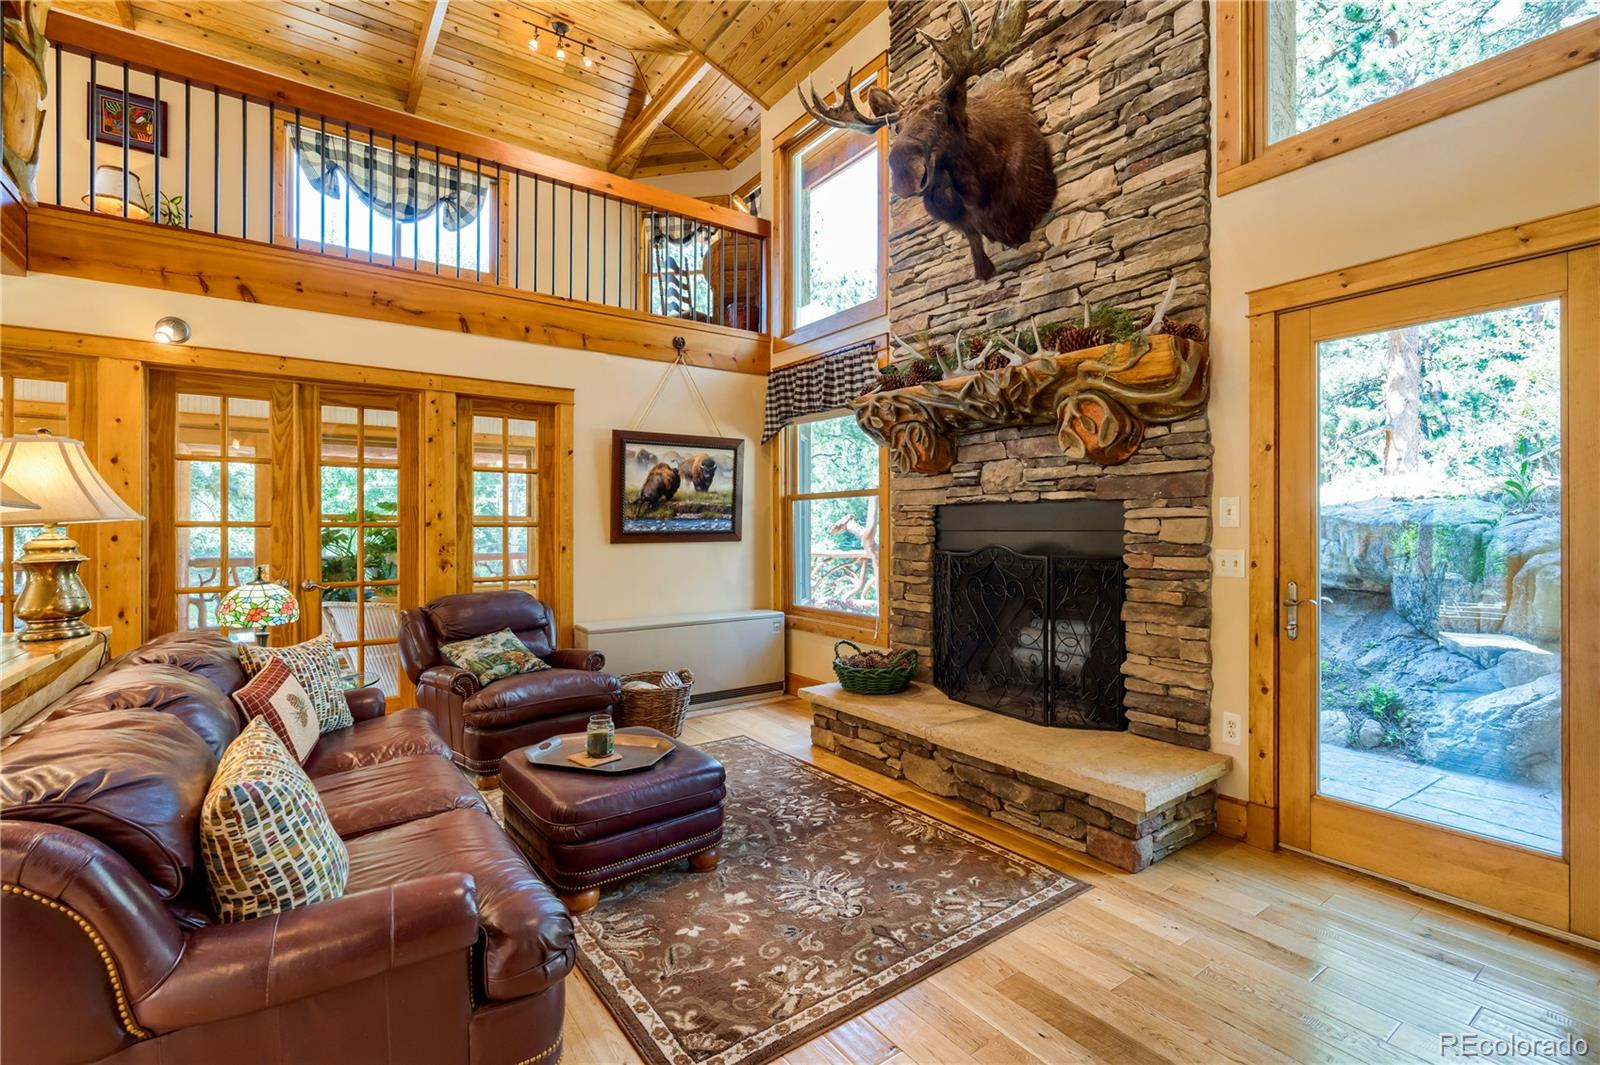 MLS# 1900649 - 14 - 55 Fox Creek Road, Glen Haven, CO 80532